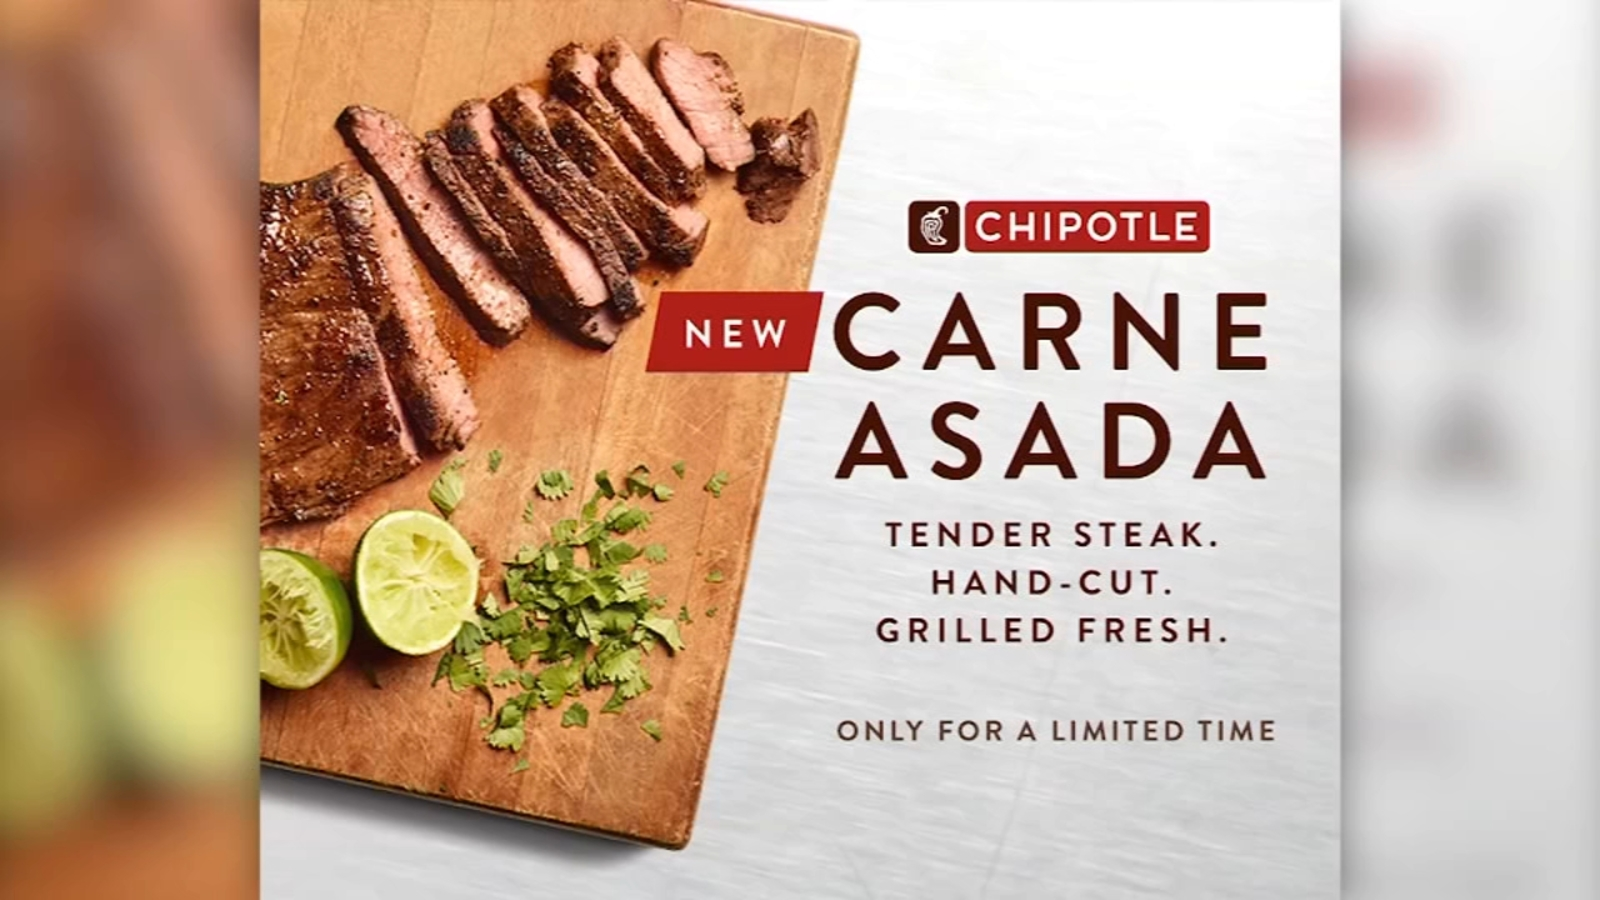 Chipotle adds new meat to menu for the first time in a year 1600x900